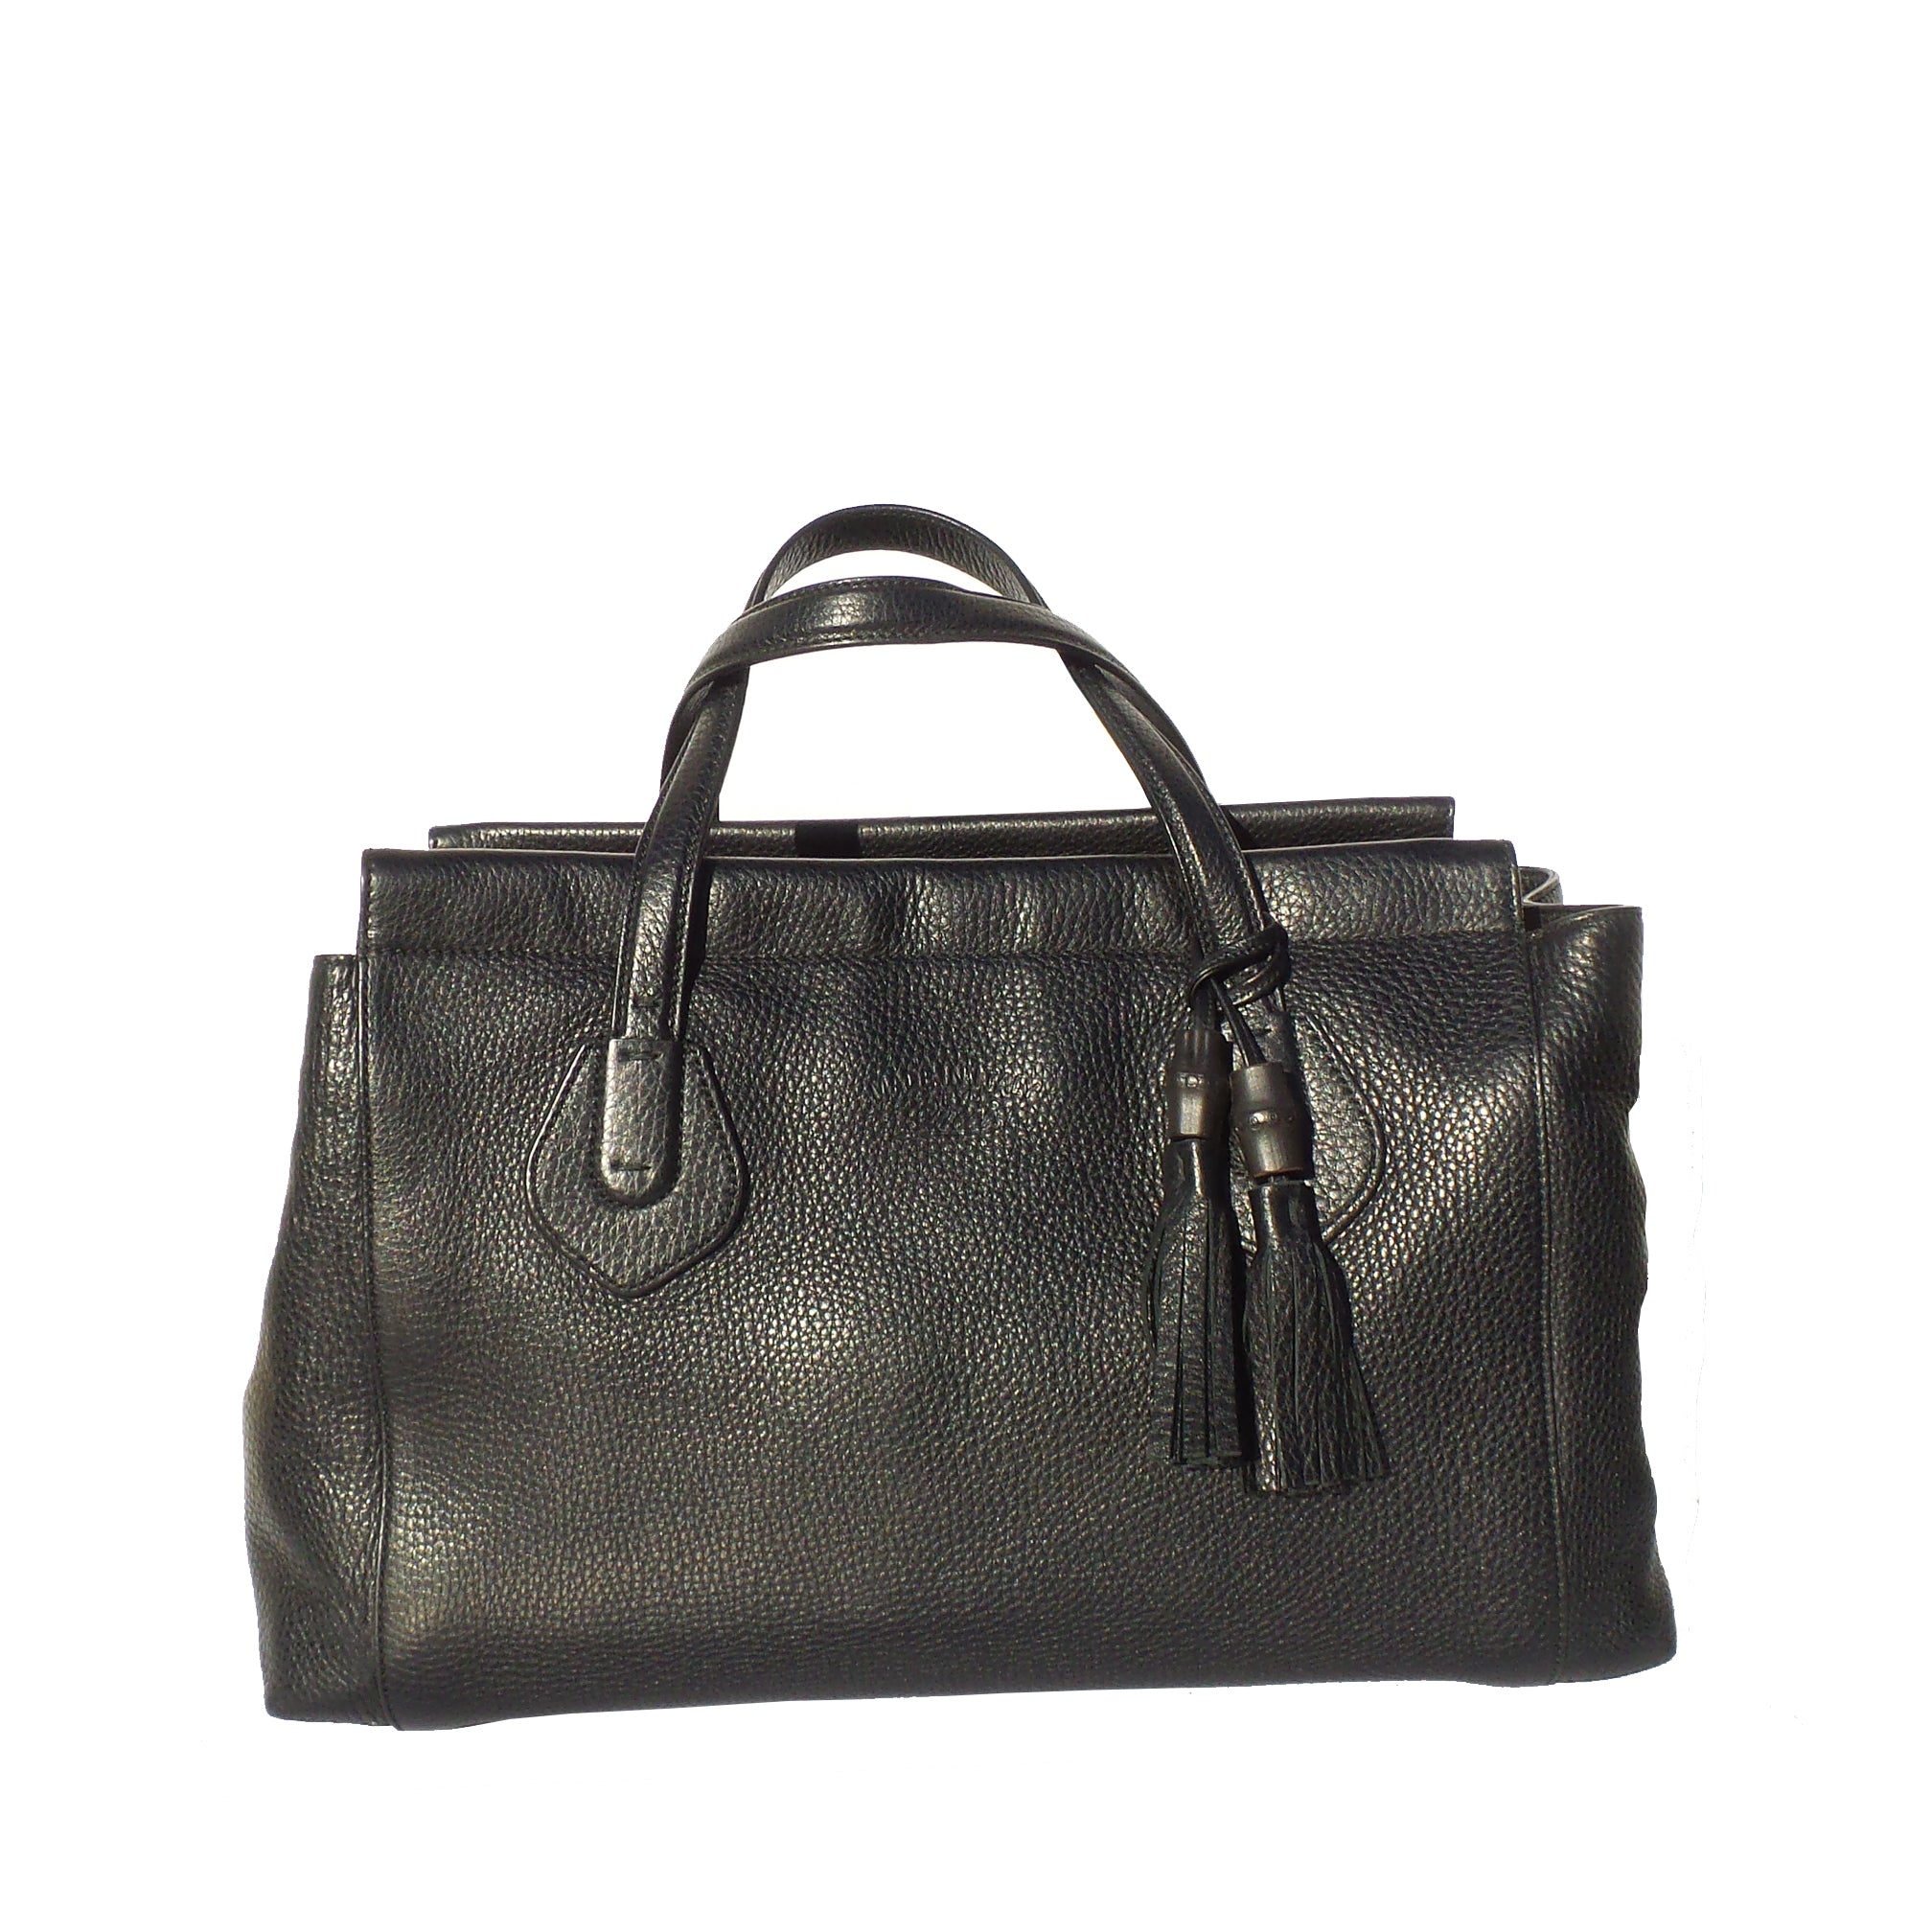 9dde8a924 GUCCI Lady Tassel Black Grained Leather Top Handle Tote Bag Satchel $2,450